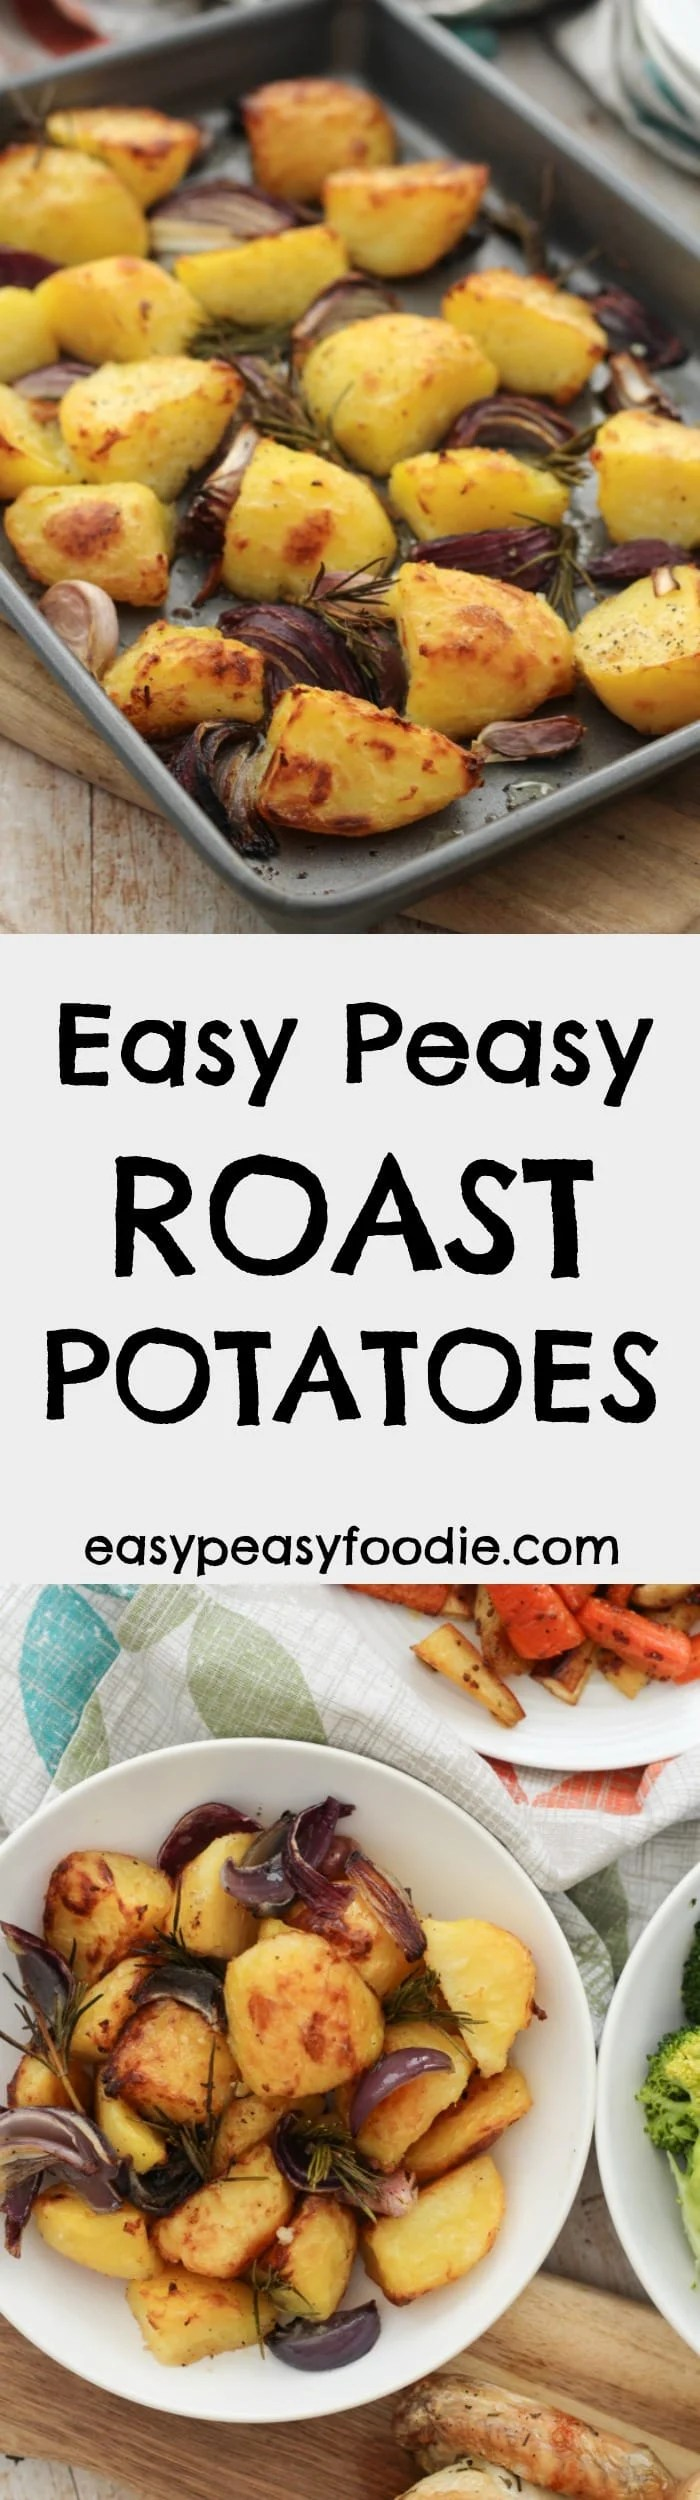 Quick, easy and delicious, these Easy Peasy Roast Potatoes are perfect for your Sunday lunch...in fact they are so quick and simple to make, you could even have them as a midweek treat! #roast #potatoes #roastpotatoes #easyroastpotatoes #roastdinner #roastdinners